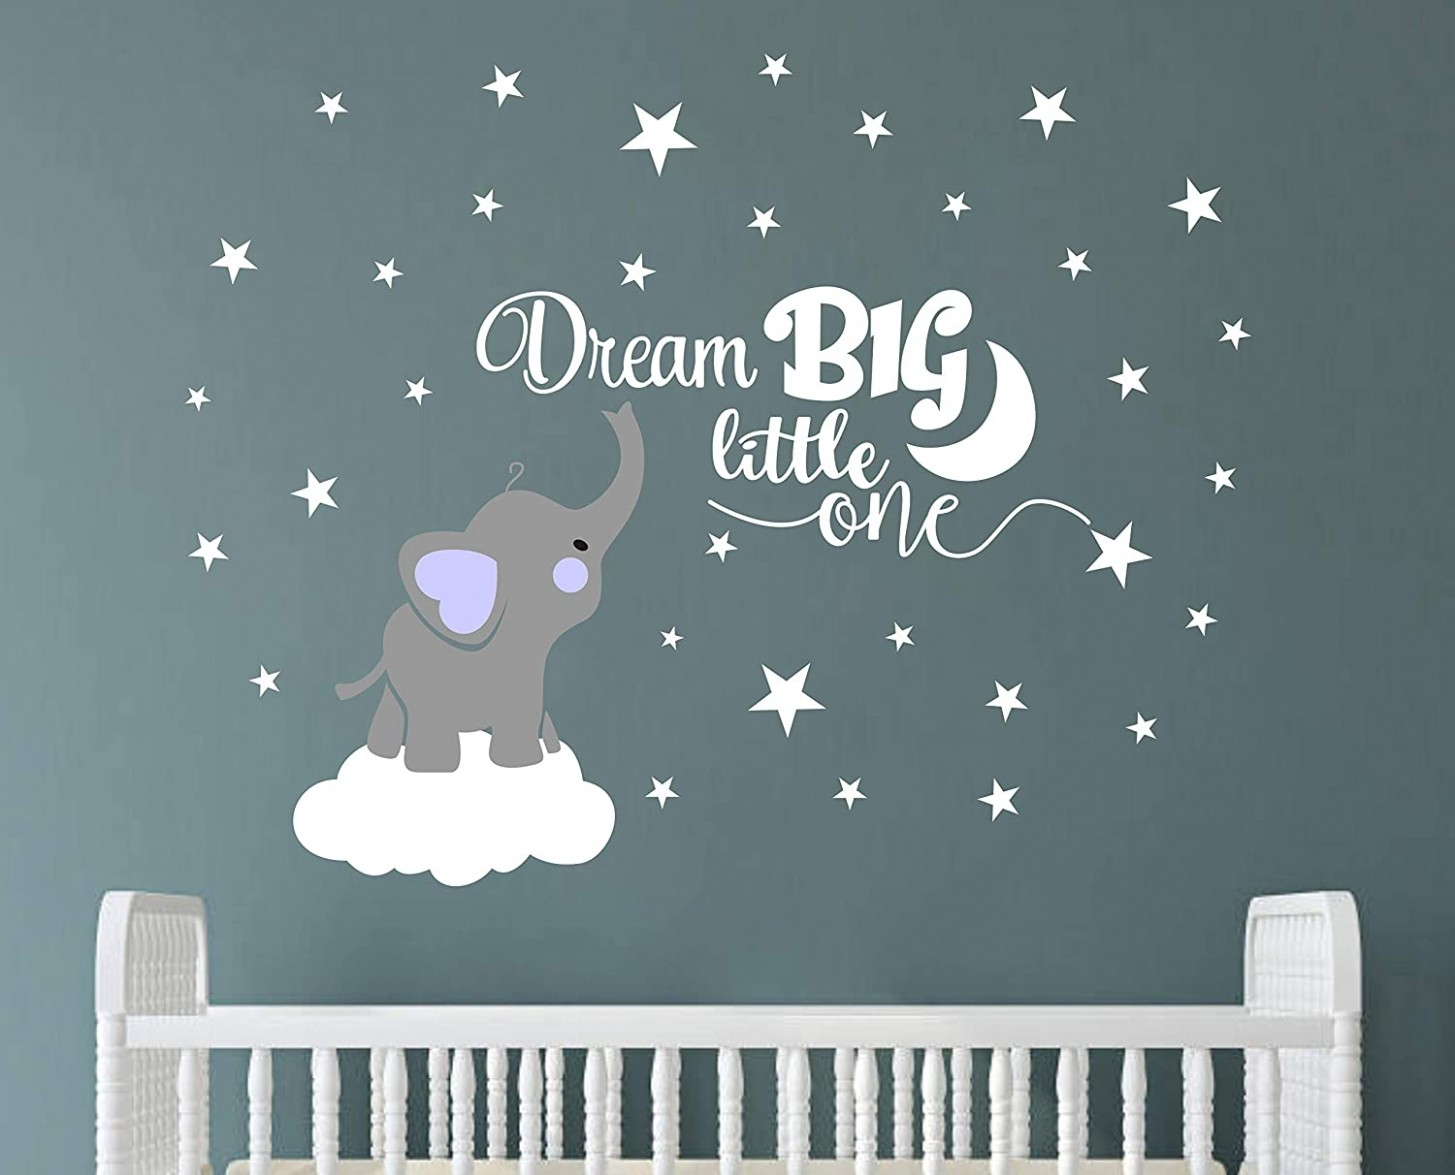 Dream Big Little One Elephant Wall Decal, Quote Wall Stickers, Baby Room  Wall Decor, Vinyl Wall Decals for Children Baby Kids Boy Girl Bedroom  Nursery  - Baby Room Elephant